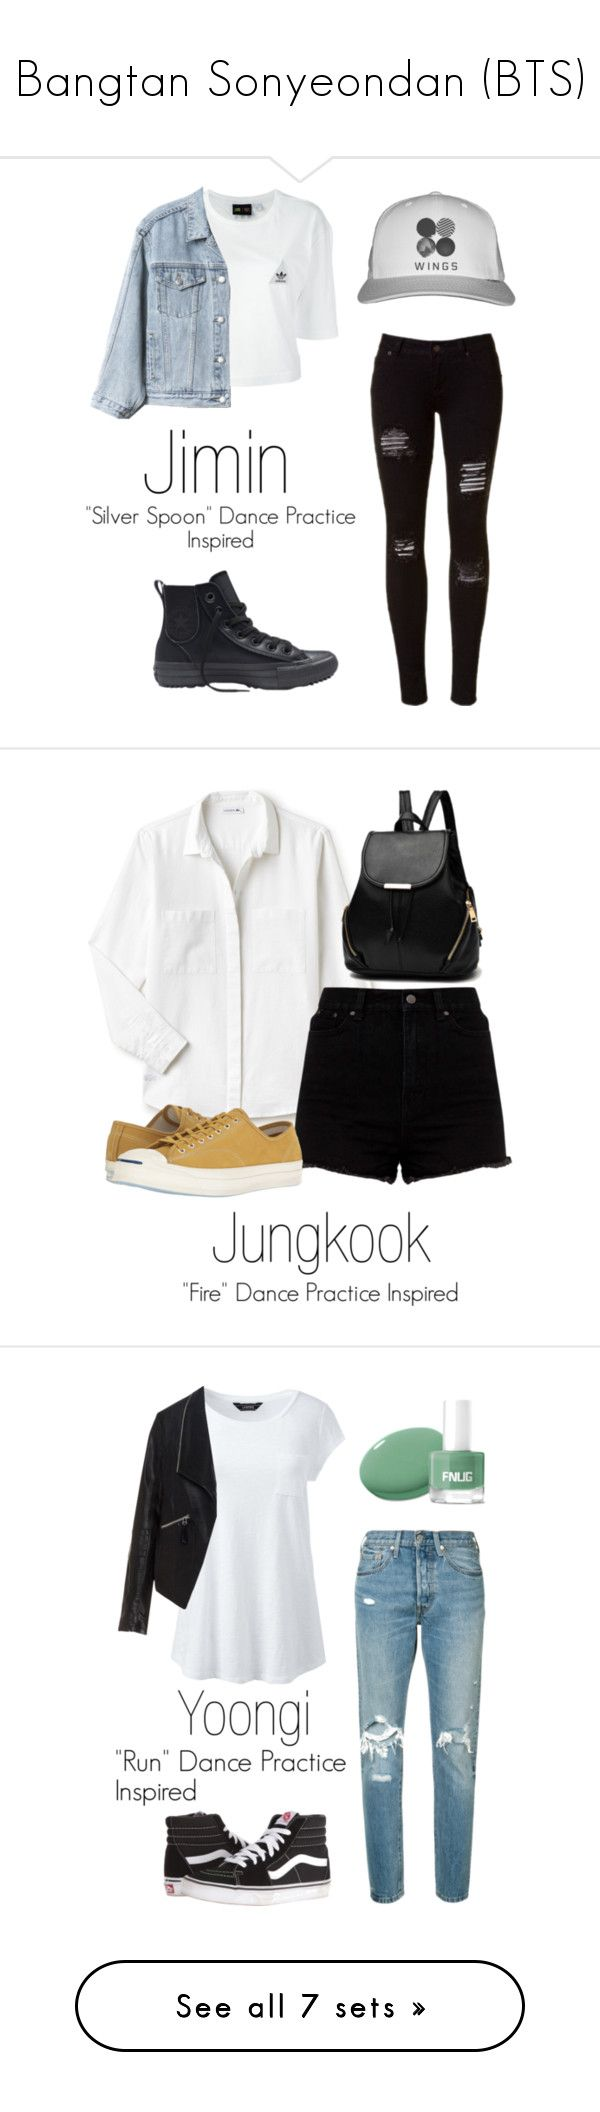 """Bangtan Sonyeondan (BTS)"" by mochimchimus on Polyvore featuring bts, adidas, Gap, Converse, Lacoste, Lands' End, Levi's, Zizzi, Vans and Old Navy"